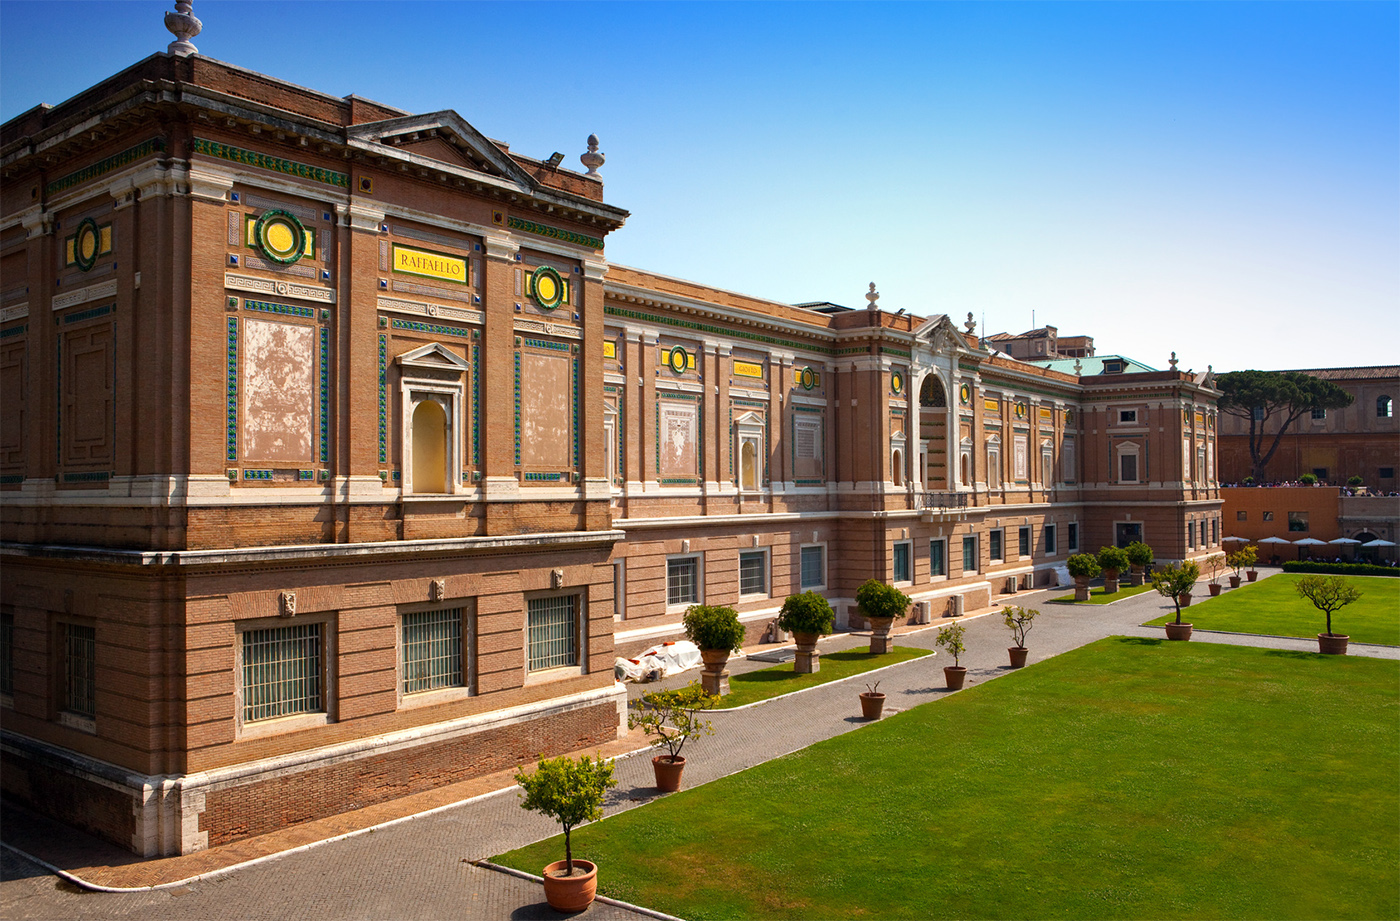 The building containing the Vatican Pinacoteca